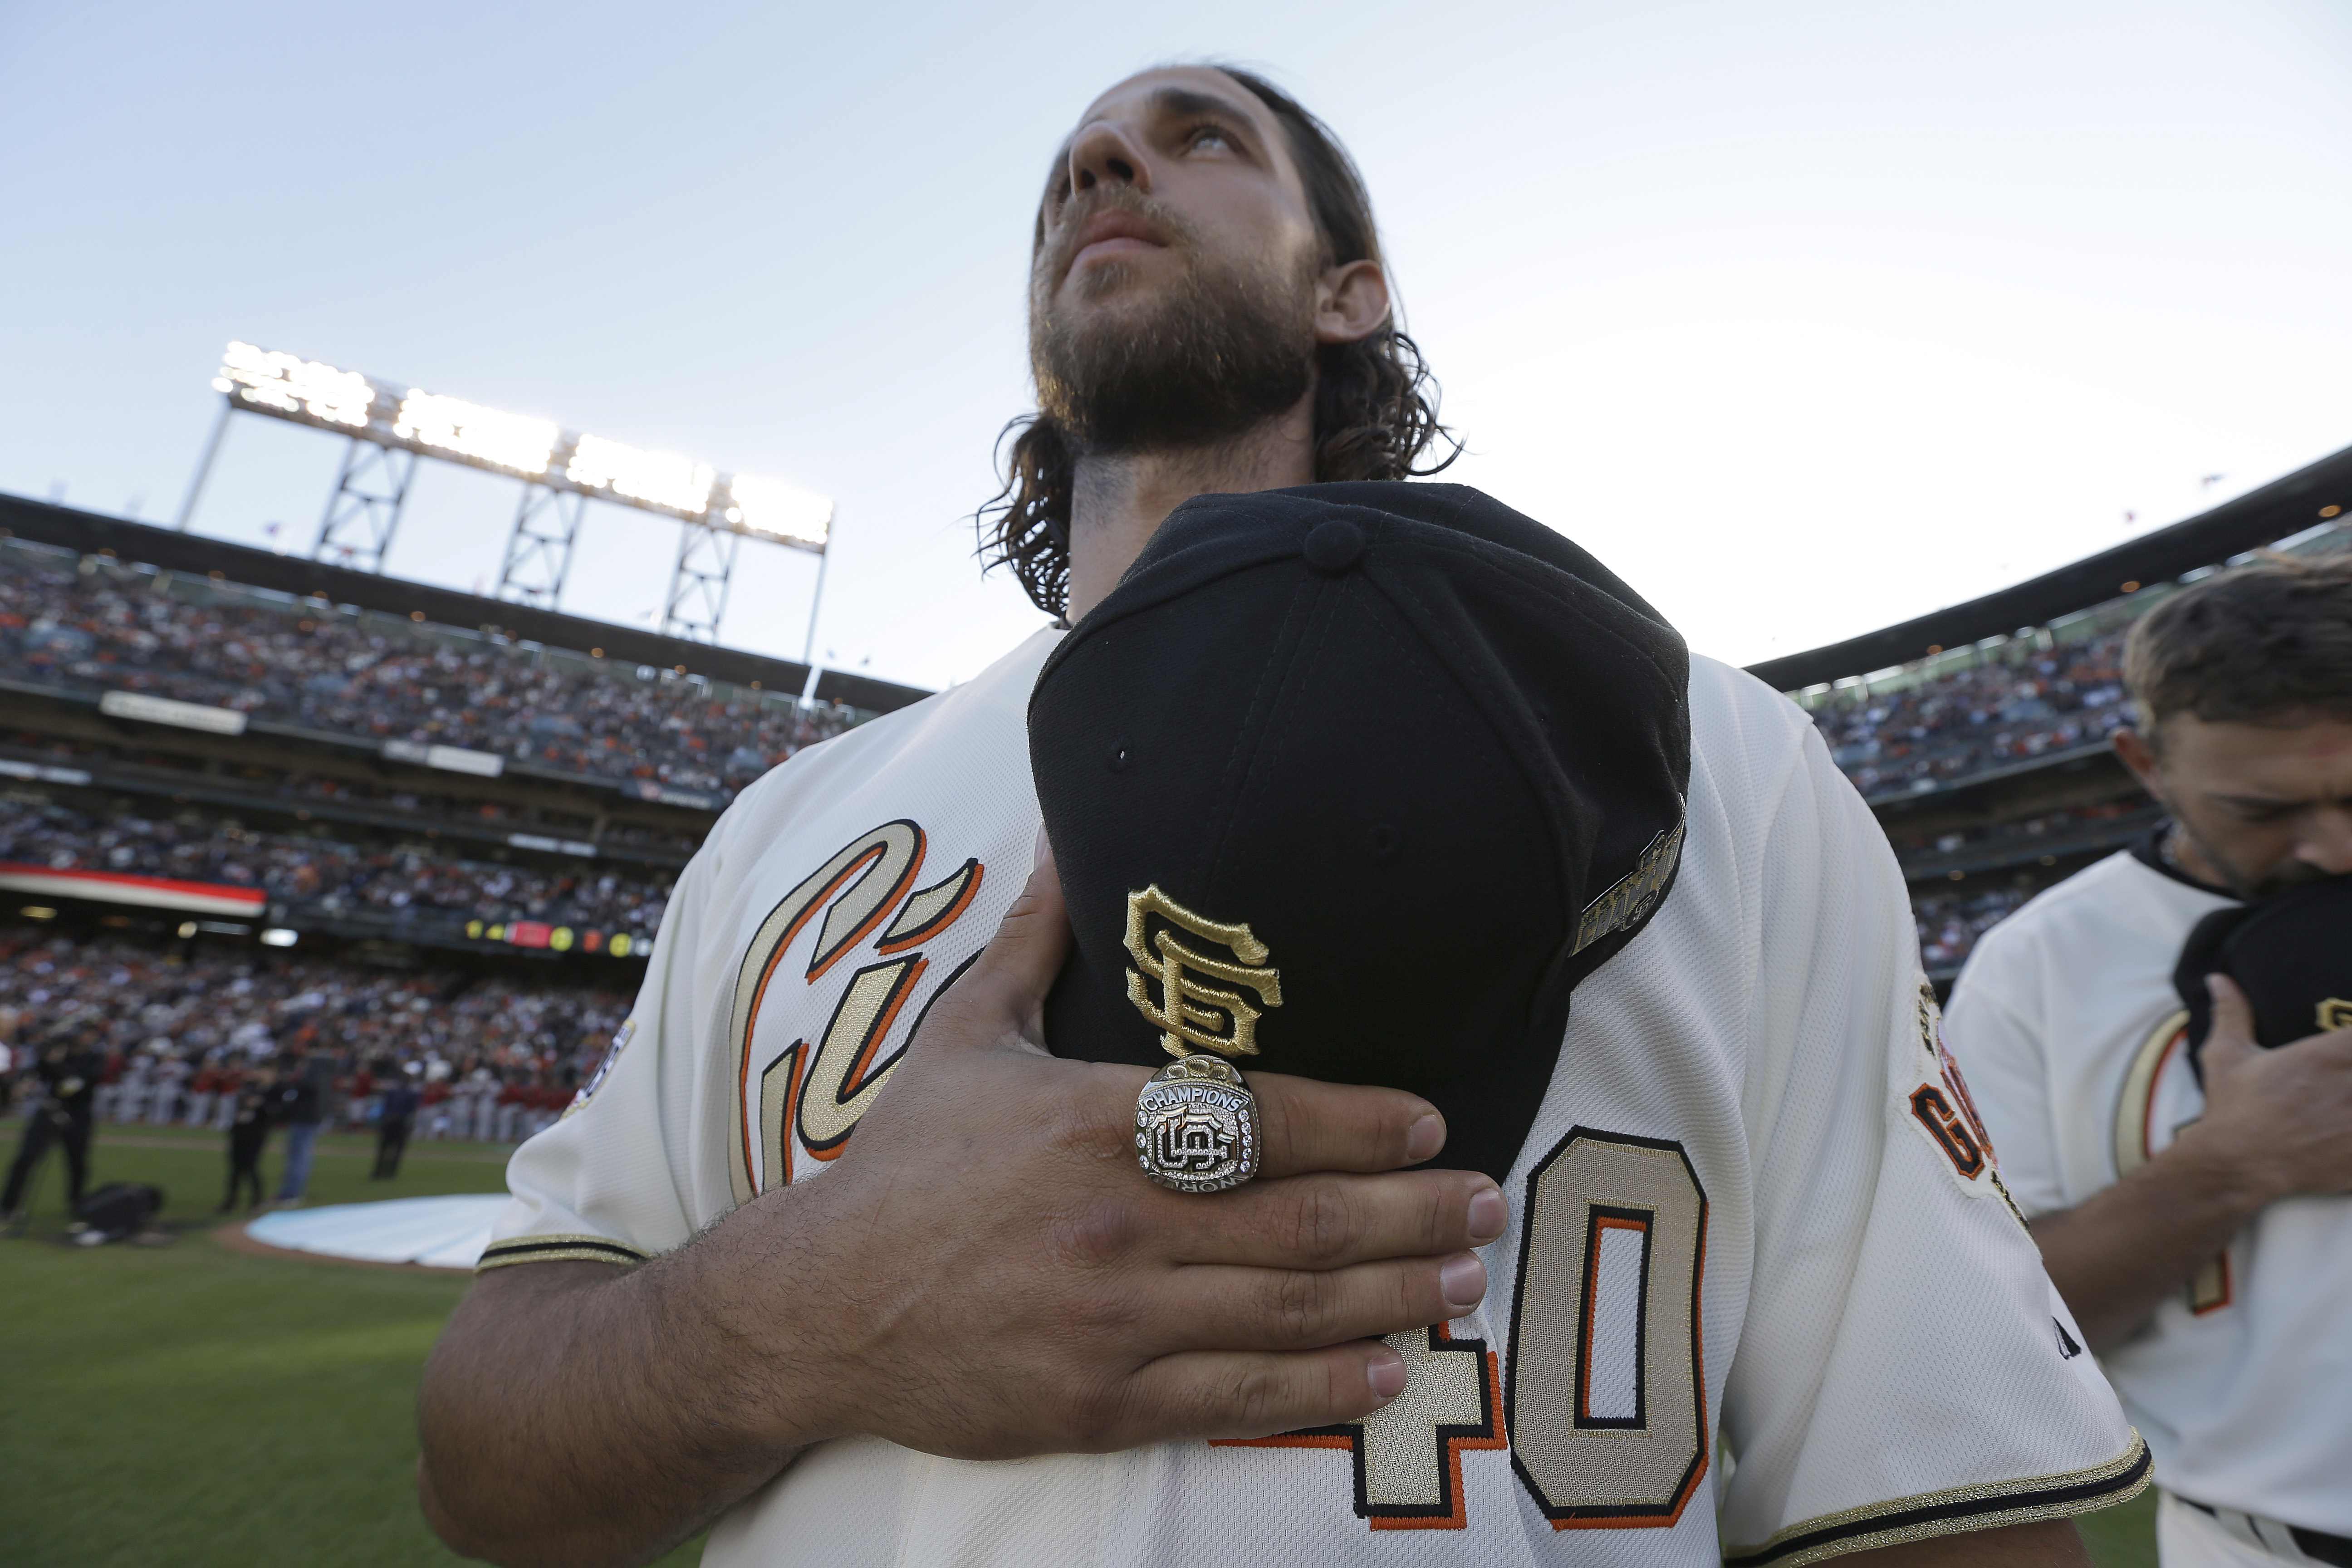 <div class='meta'><div class='origin-logo' data-origin='AP'></div><span class='caption-text' data-credit='AP Photo/Ben Margot, Pool'>San Francisco Giants' Madison Bumgarner stands for the national anthem wearing his 2014 World Series championship ring before the baseball game against the Arizona Diamondbacks.</span></div>